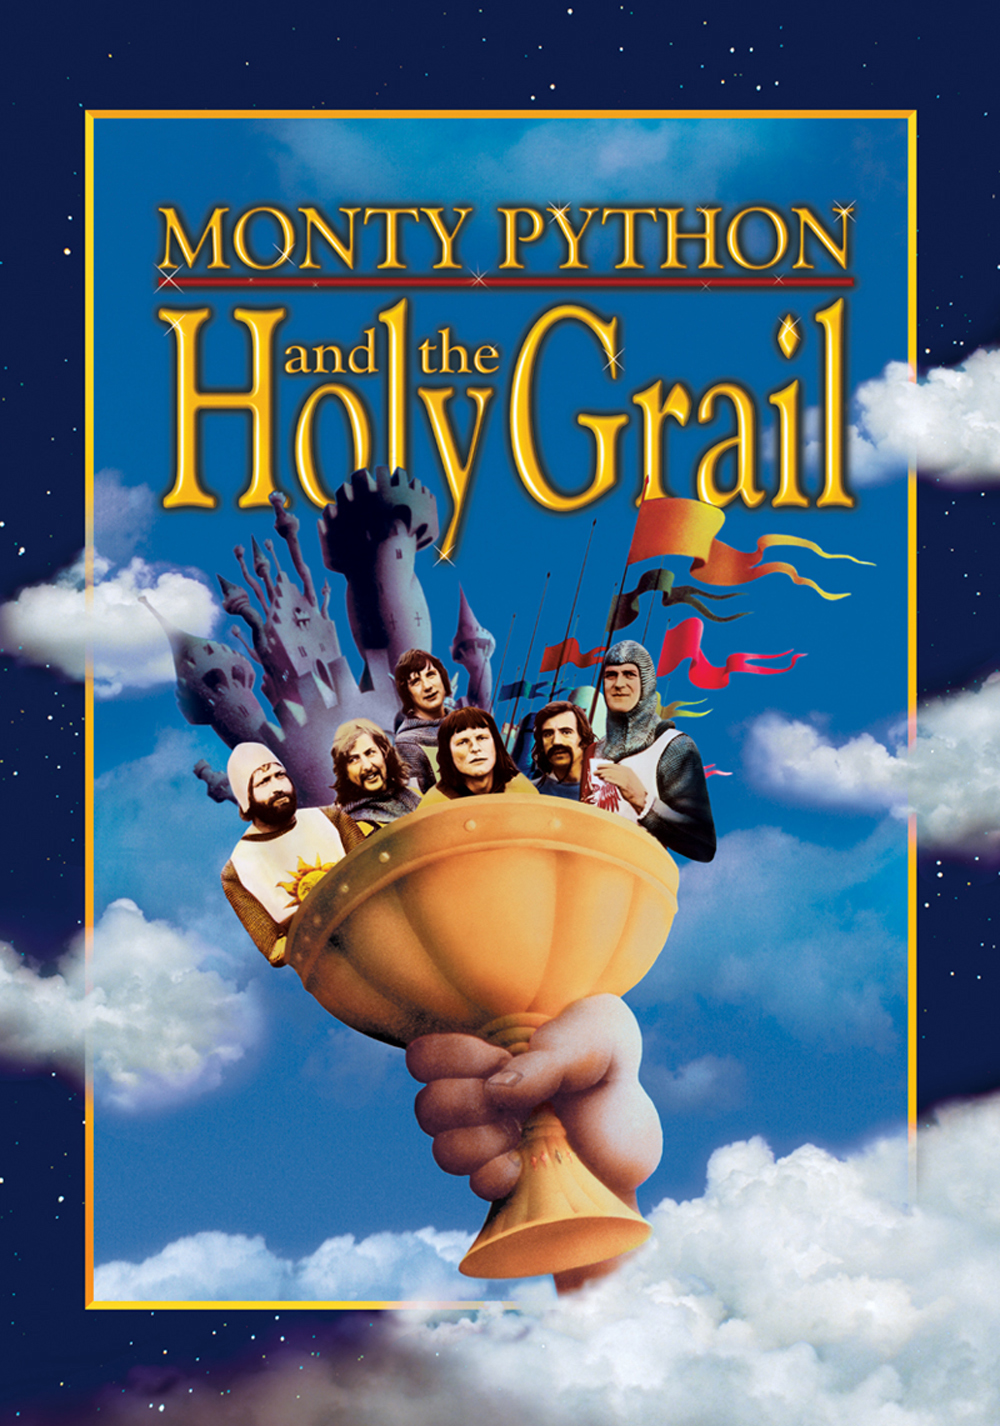 """MONTY PYTHON AND THE HOLY GRAIL (1975) spoken by """"French Soldier""""/ John Cleese"""